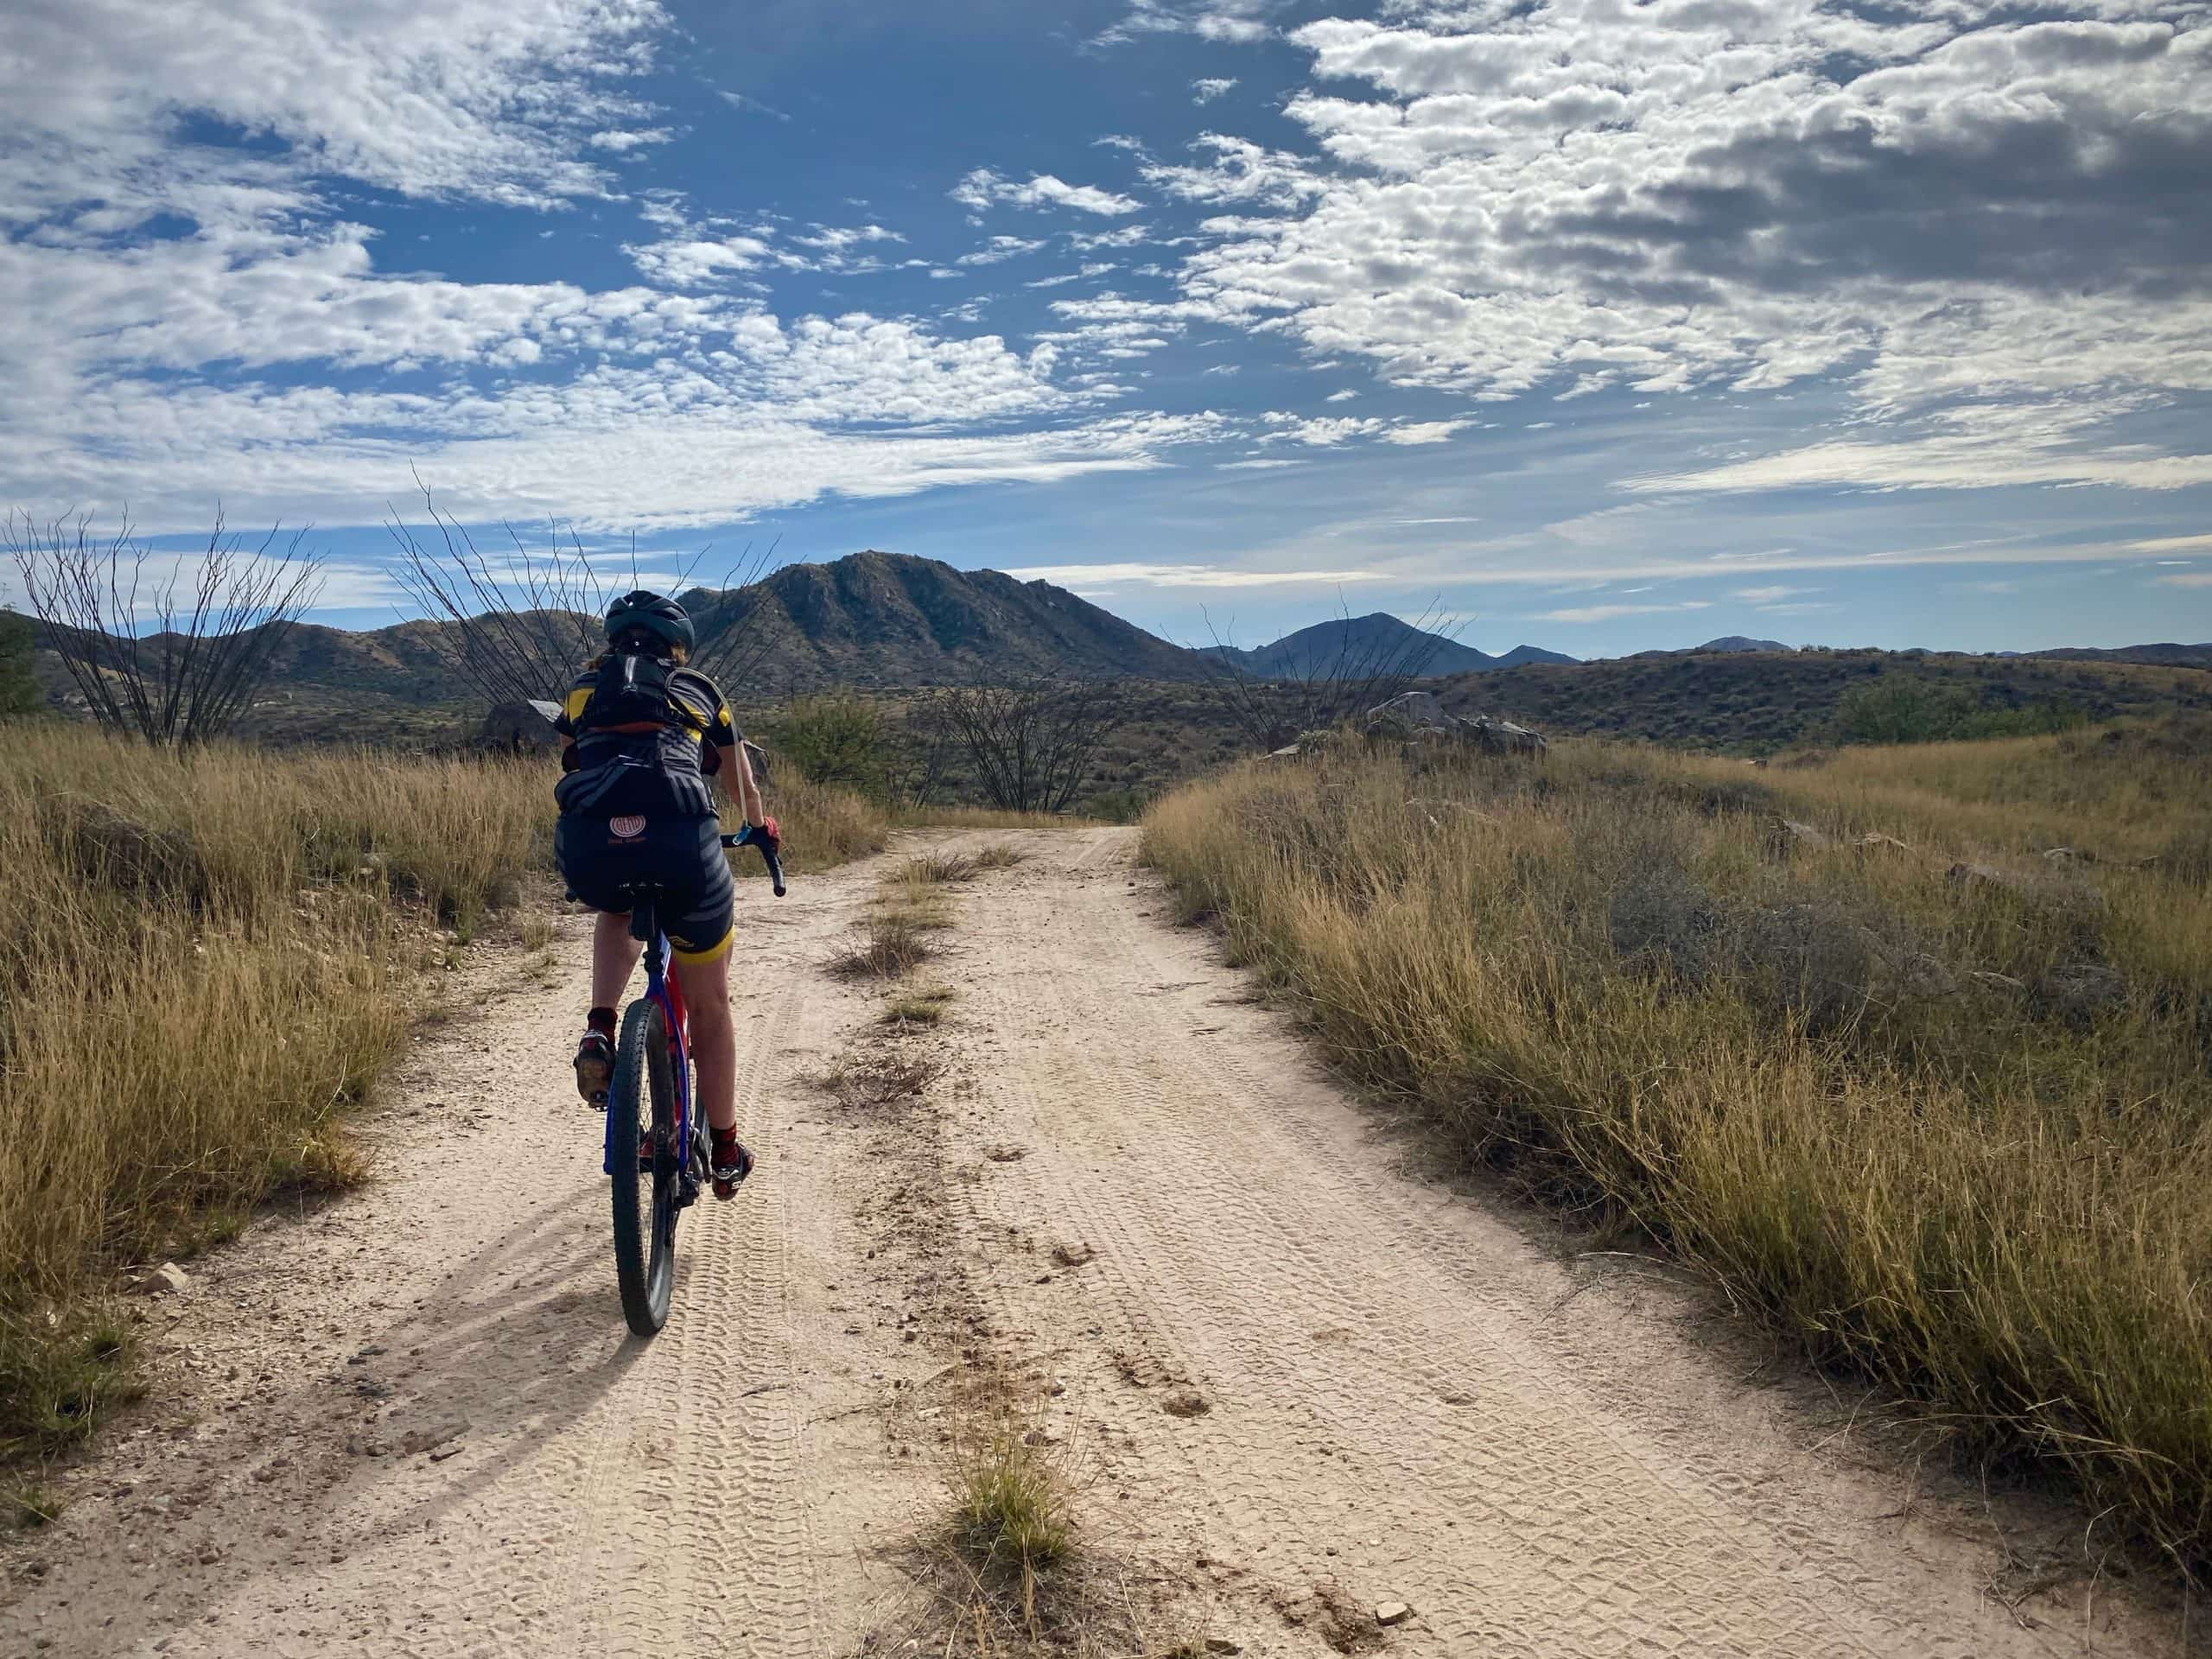 Gravel cyclist on dirt road with Coches Ridge in the background in Buenos Aires National Wildlife Refuge in Arizona.